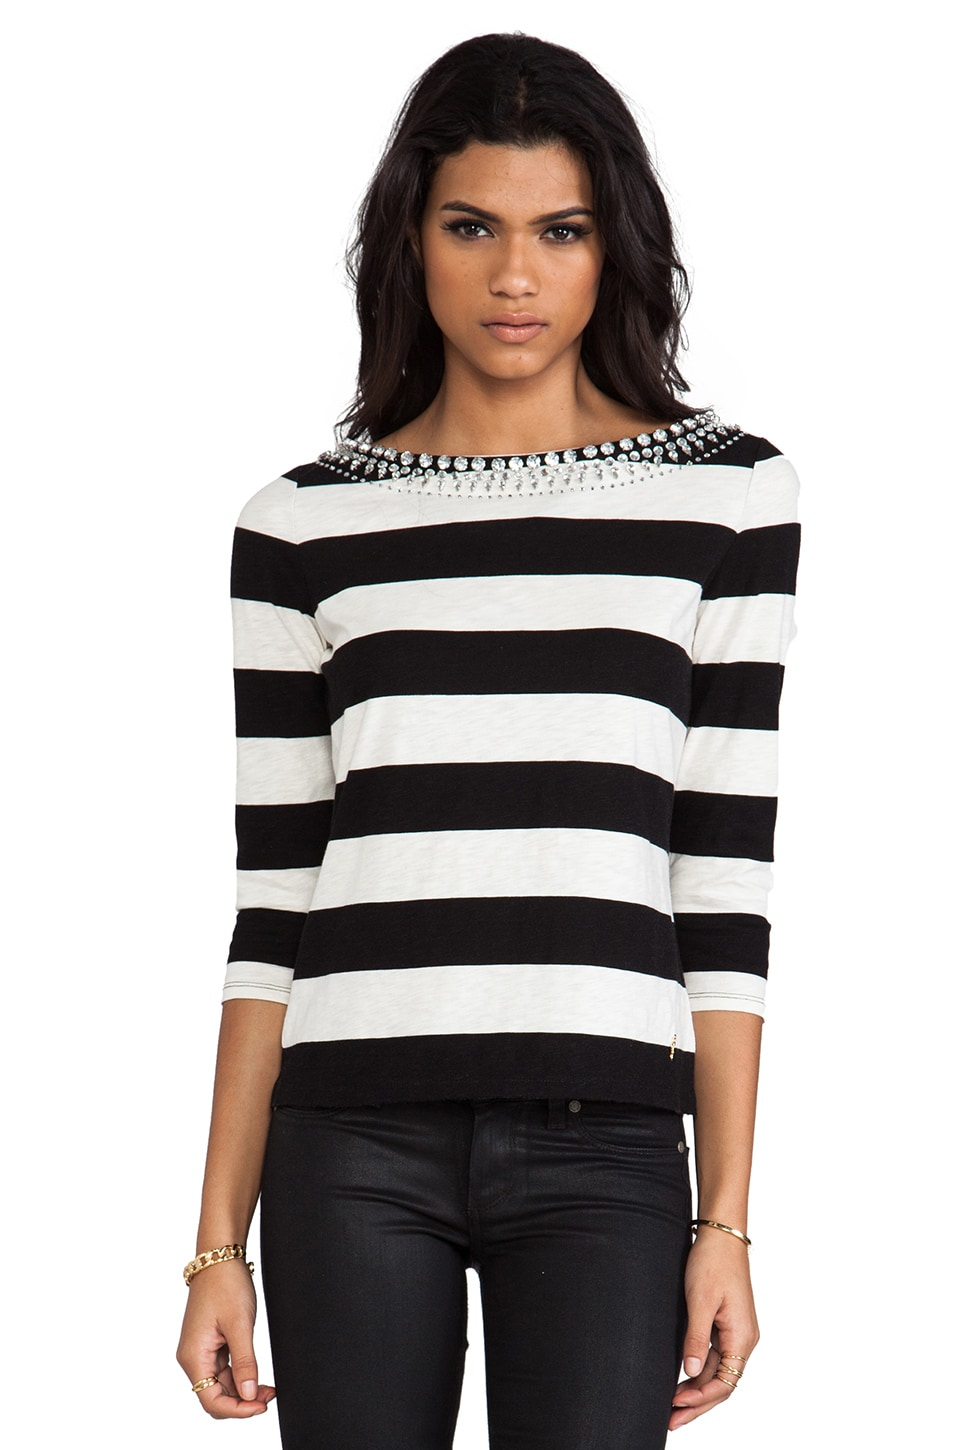 Juicy Couture Sunset Stripe Knit Embellished Tee in Black